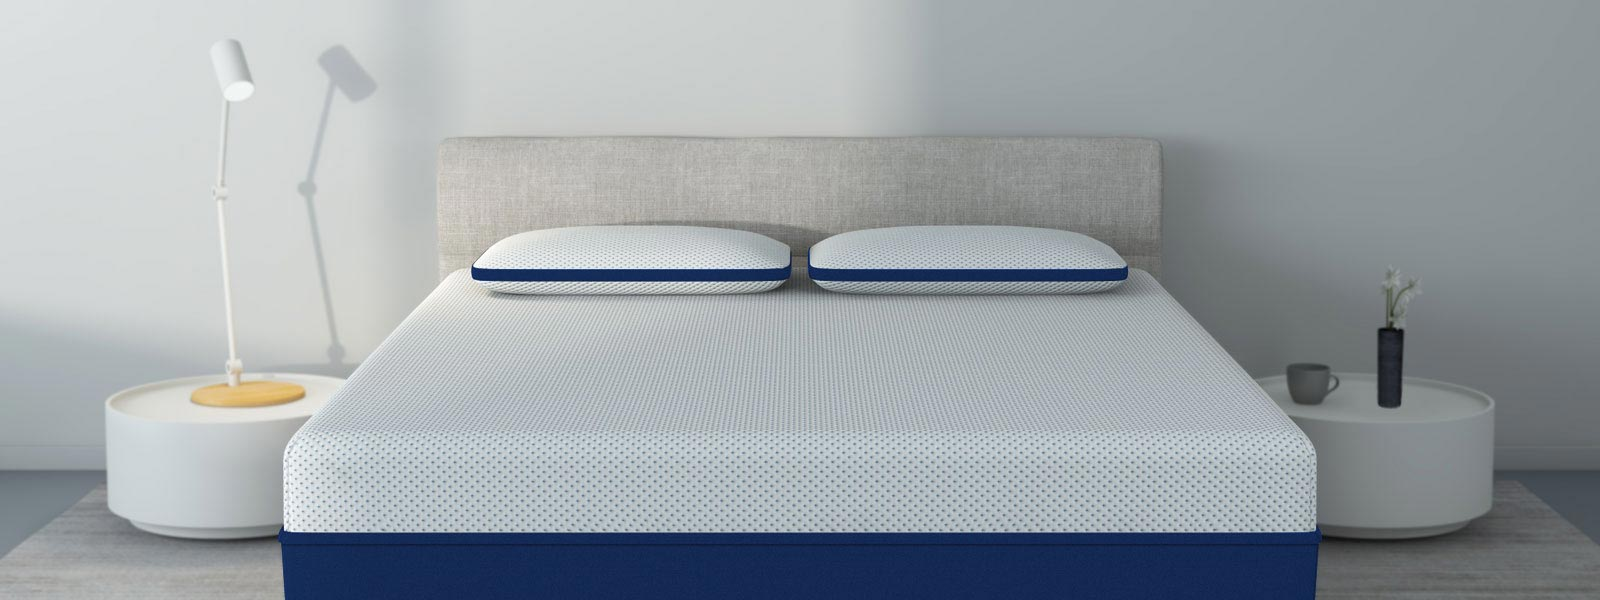 Best Mattress Brands Reviews And Buying Guide by www.snoremagazine.com